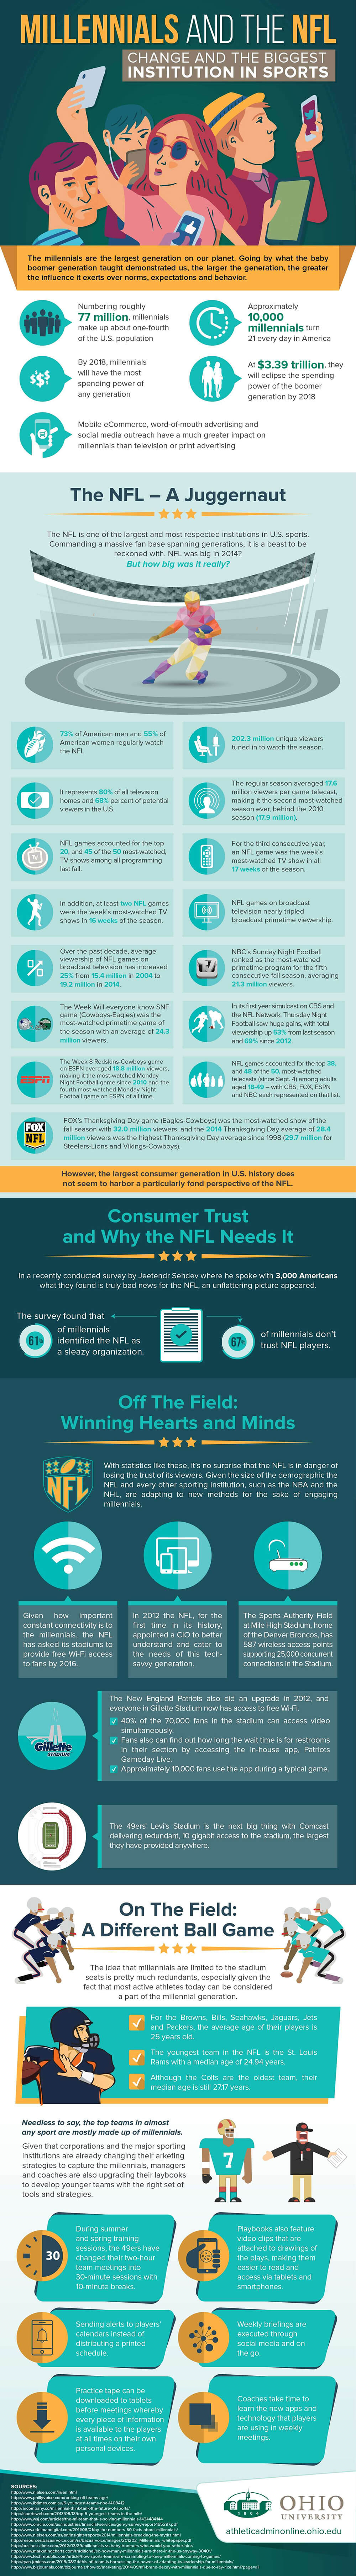 Millennials and the NFL infographic